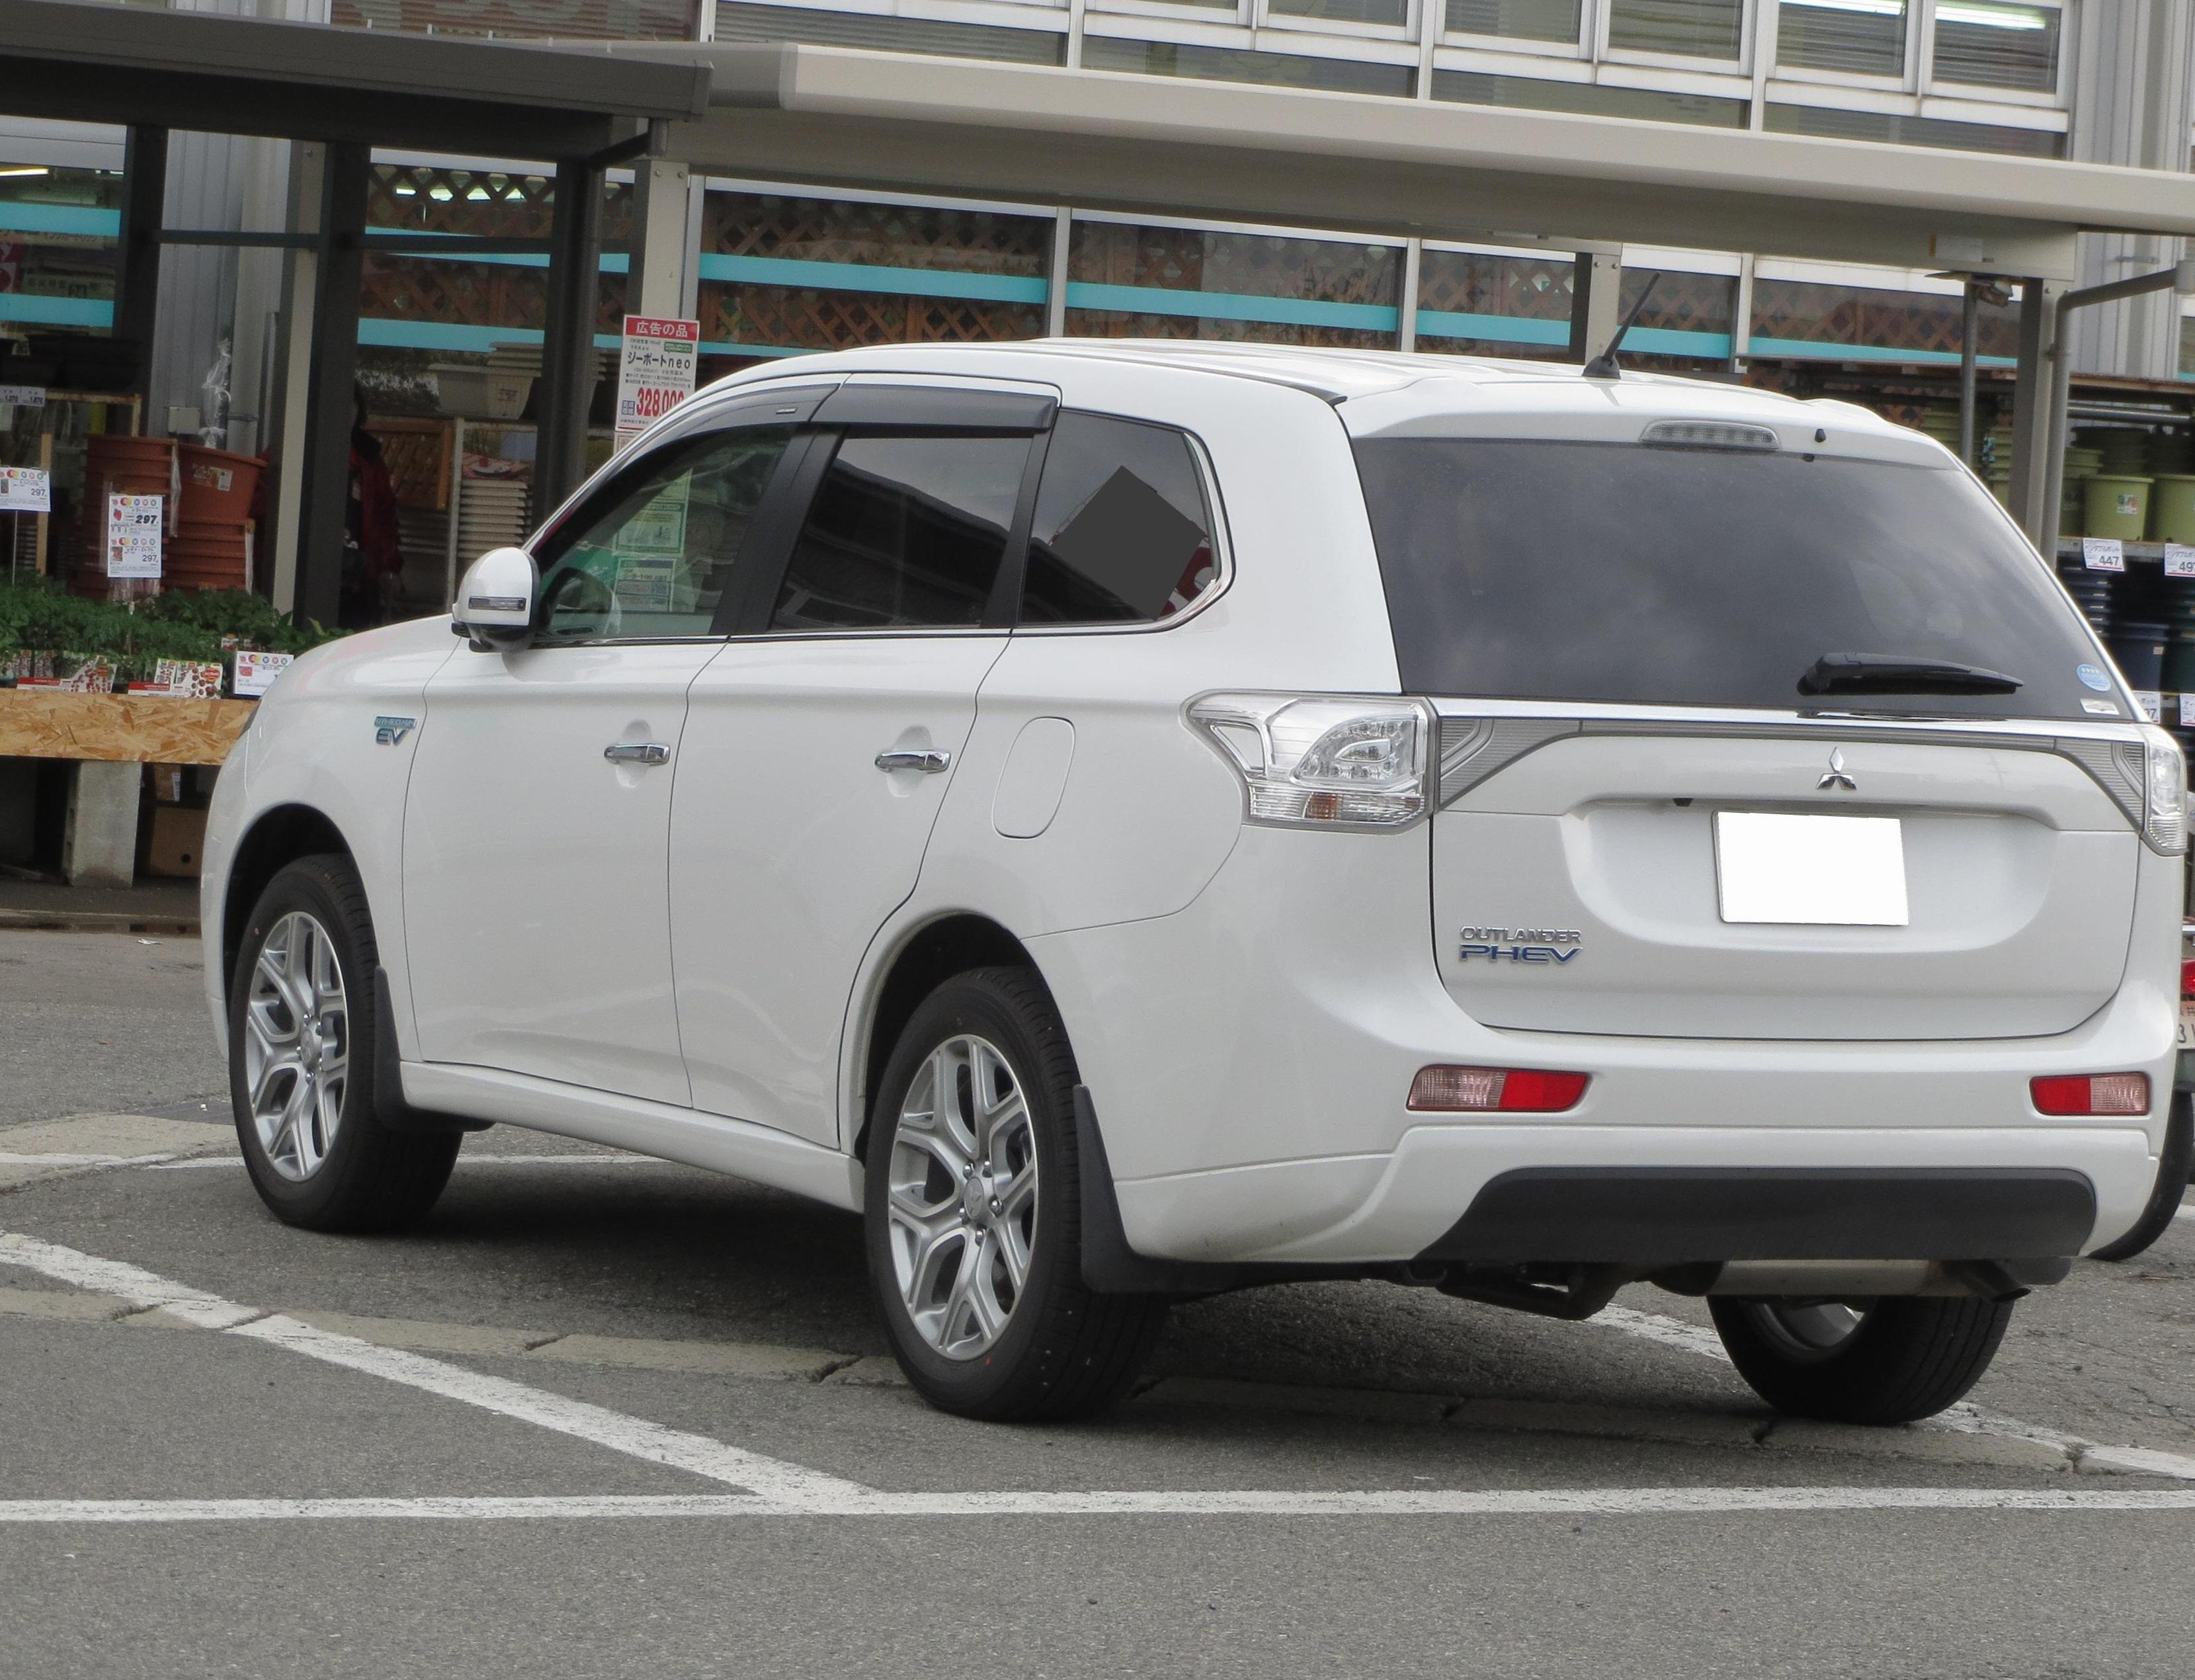 Outlander PHEV Mitsubishi usa sedan